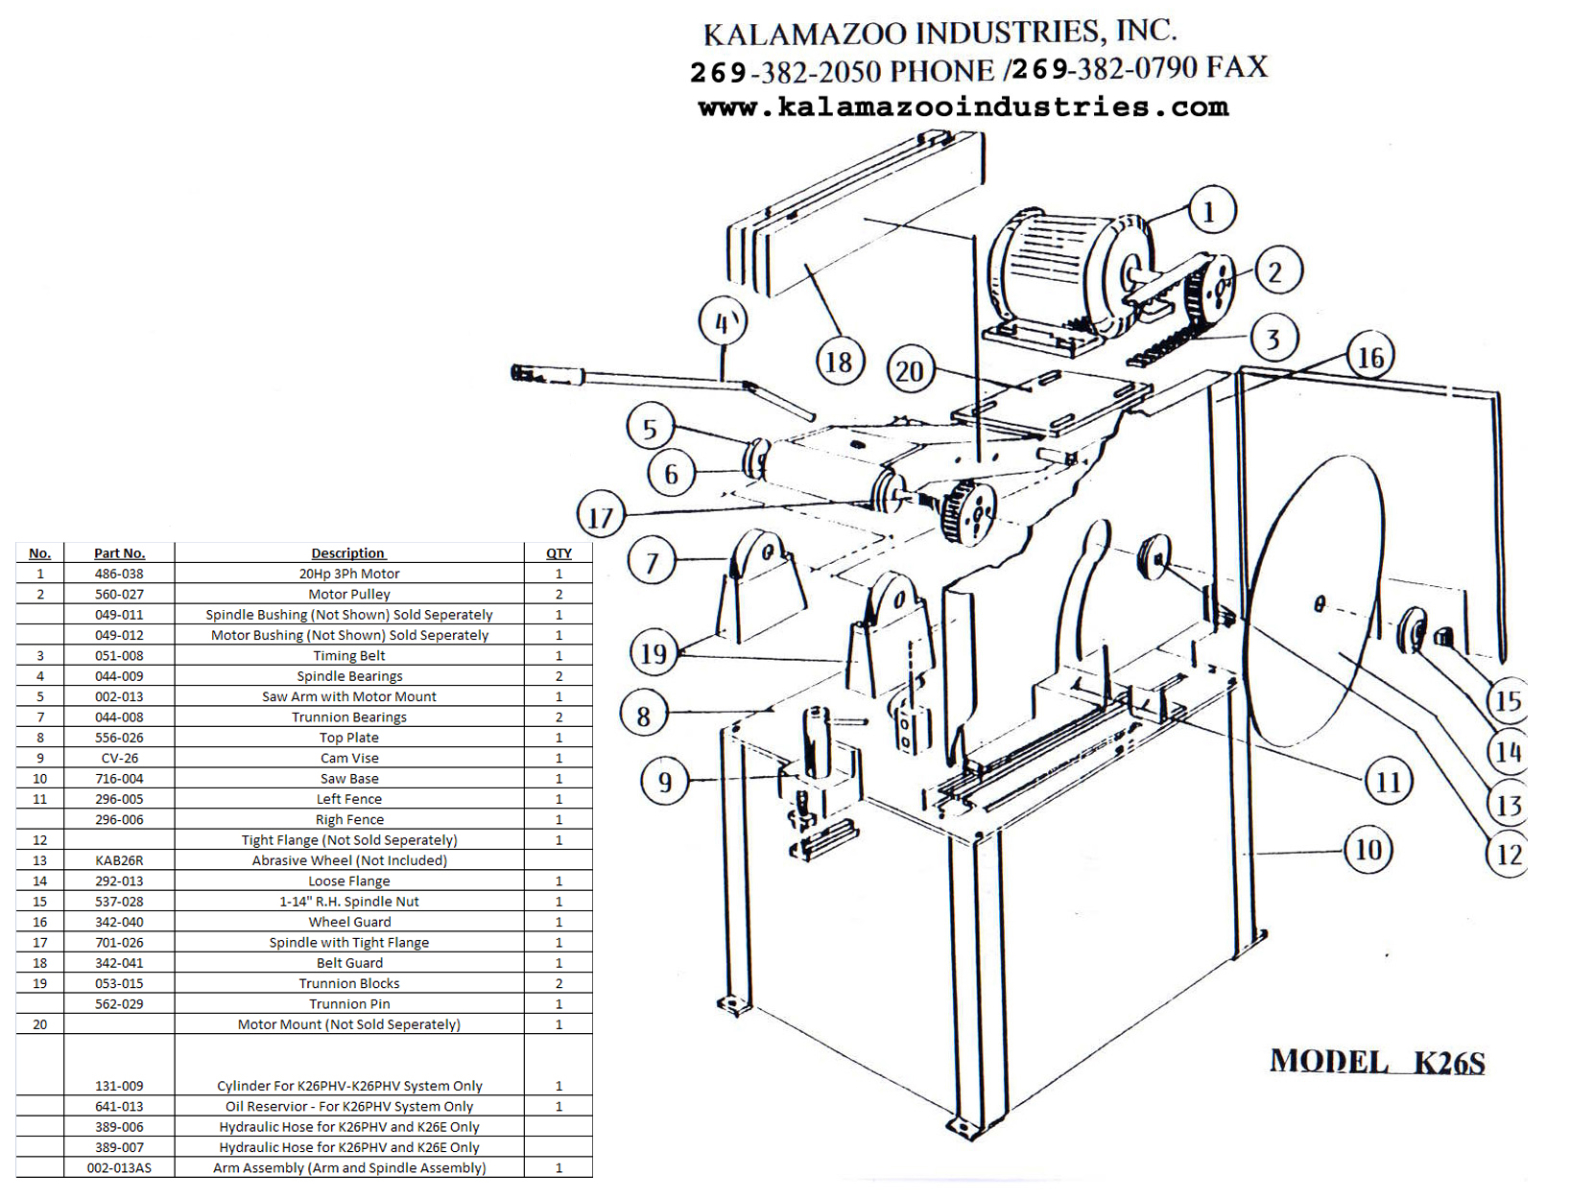 K26S 26 inch industrial abrasive chop saw parts list, industrial, abrasive, abrasive, chop saw, saw